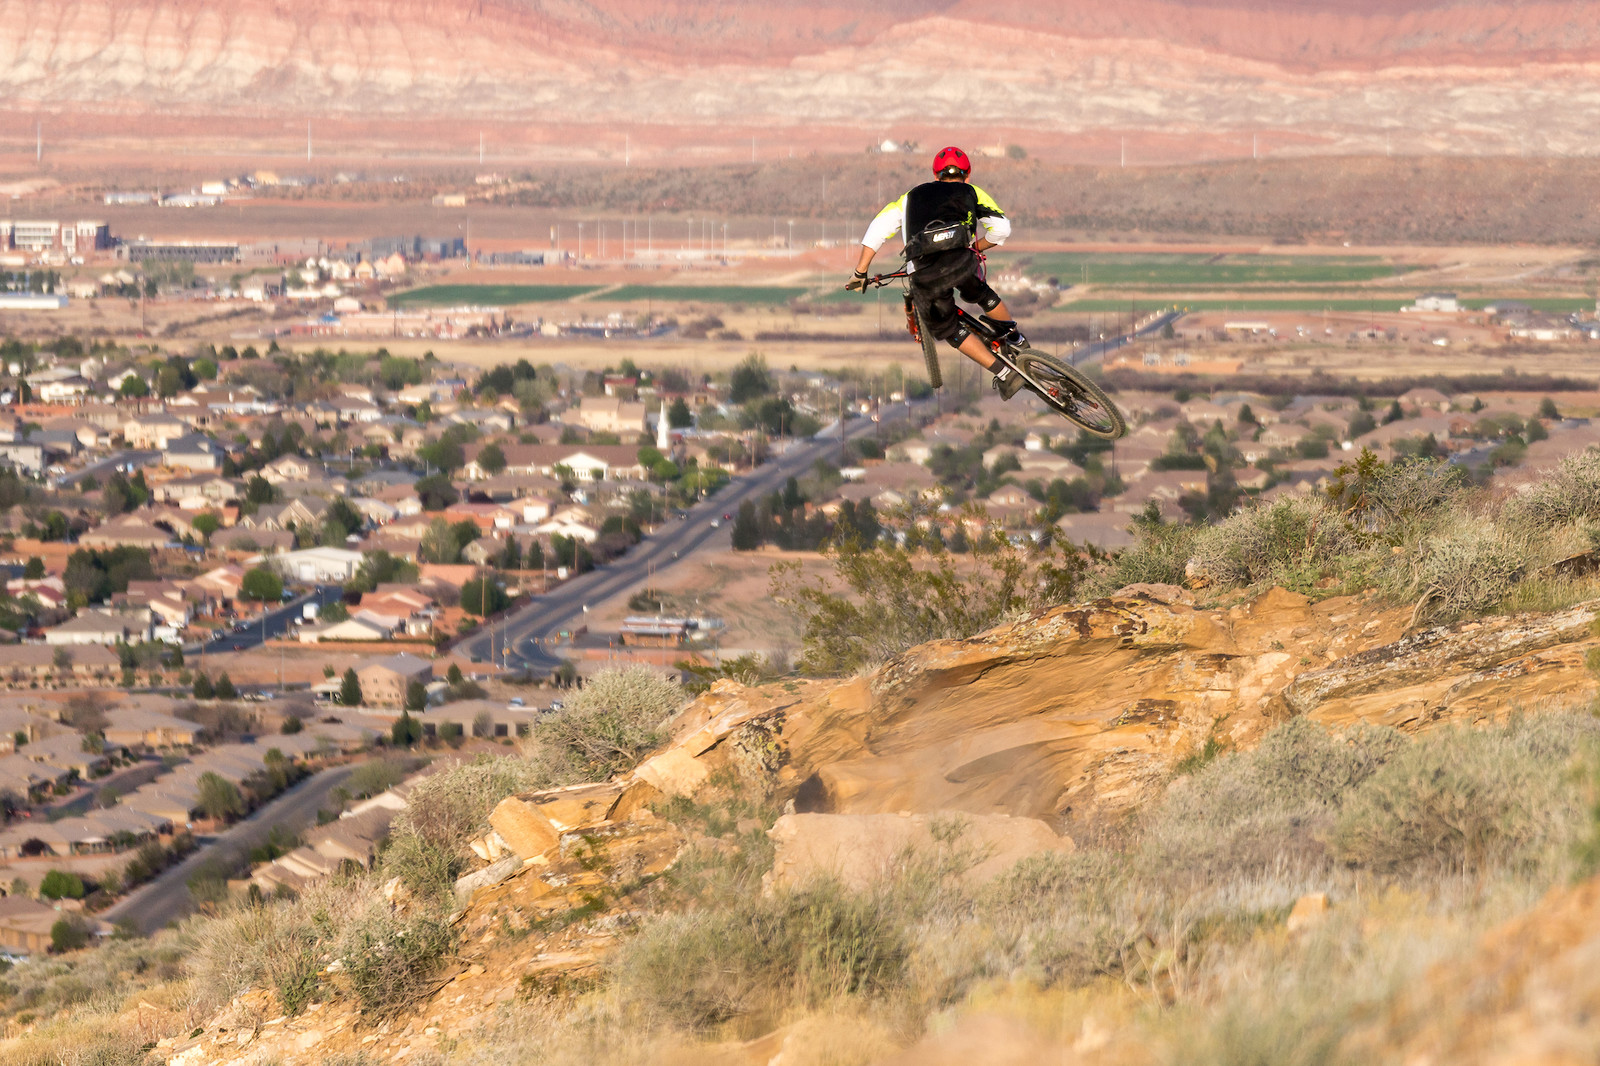 Timed-Self Portrate - dirtworks911 - Mountain Biking Pictures - Vital MTB